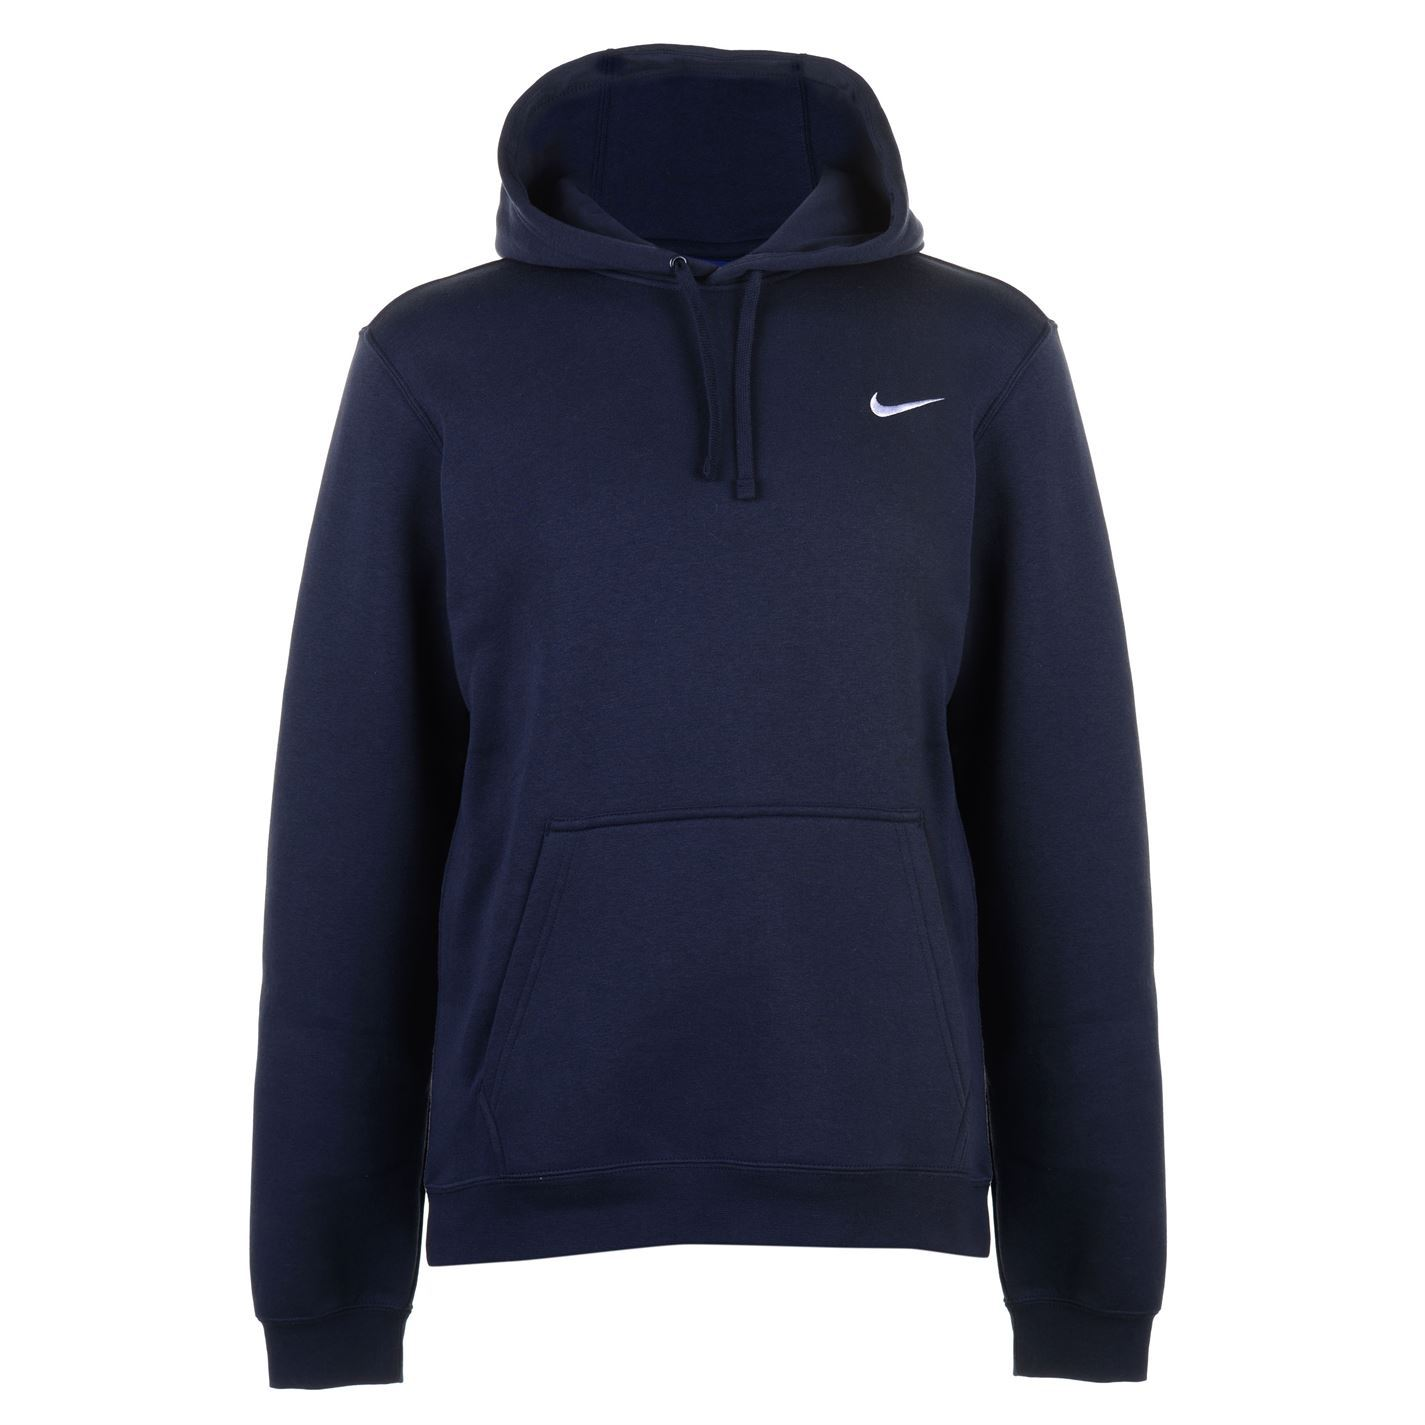 Nike-Fundamentals-Fleece-Lined-Pullover-Hoody-Mens-OTH-Hoodie-Sweatshirt-Sweater thumbnail 9